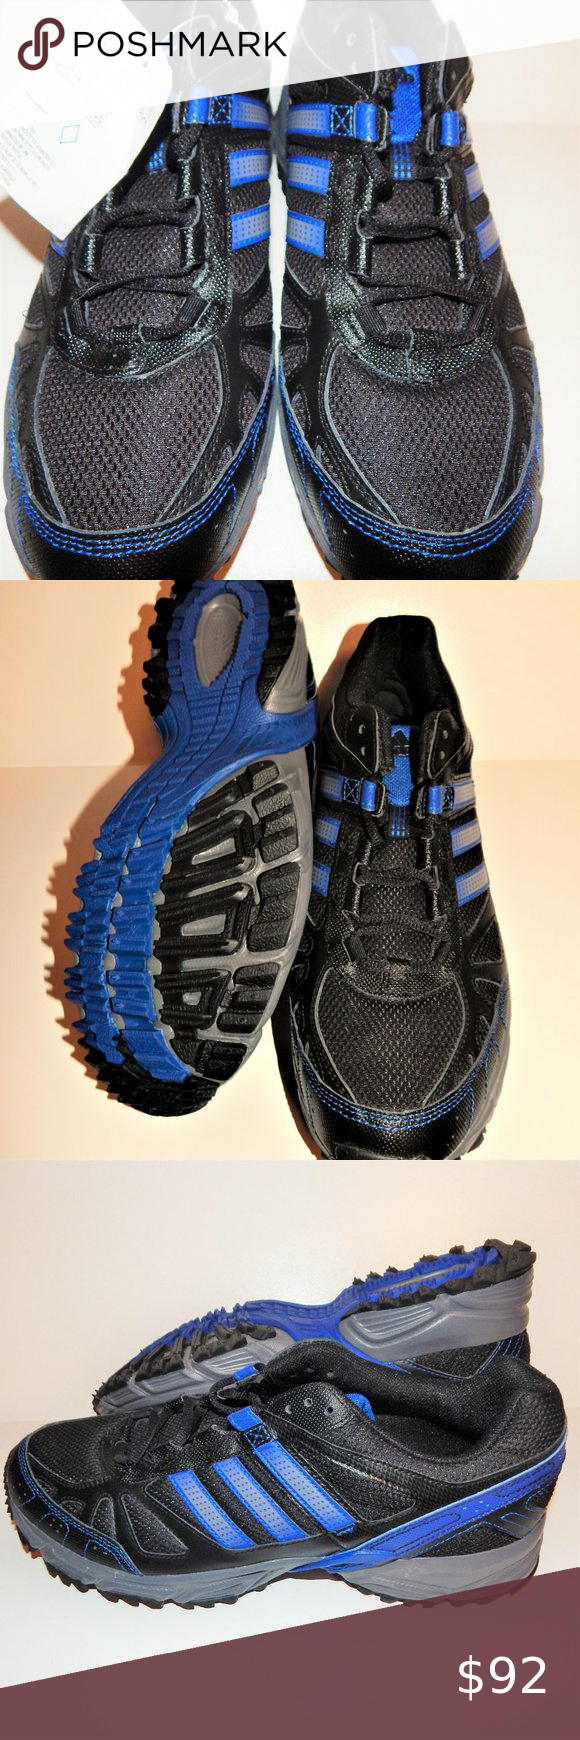 adidas running shoes mens size 11